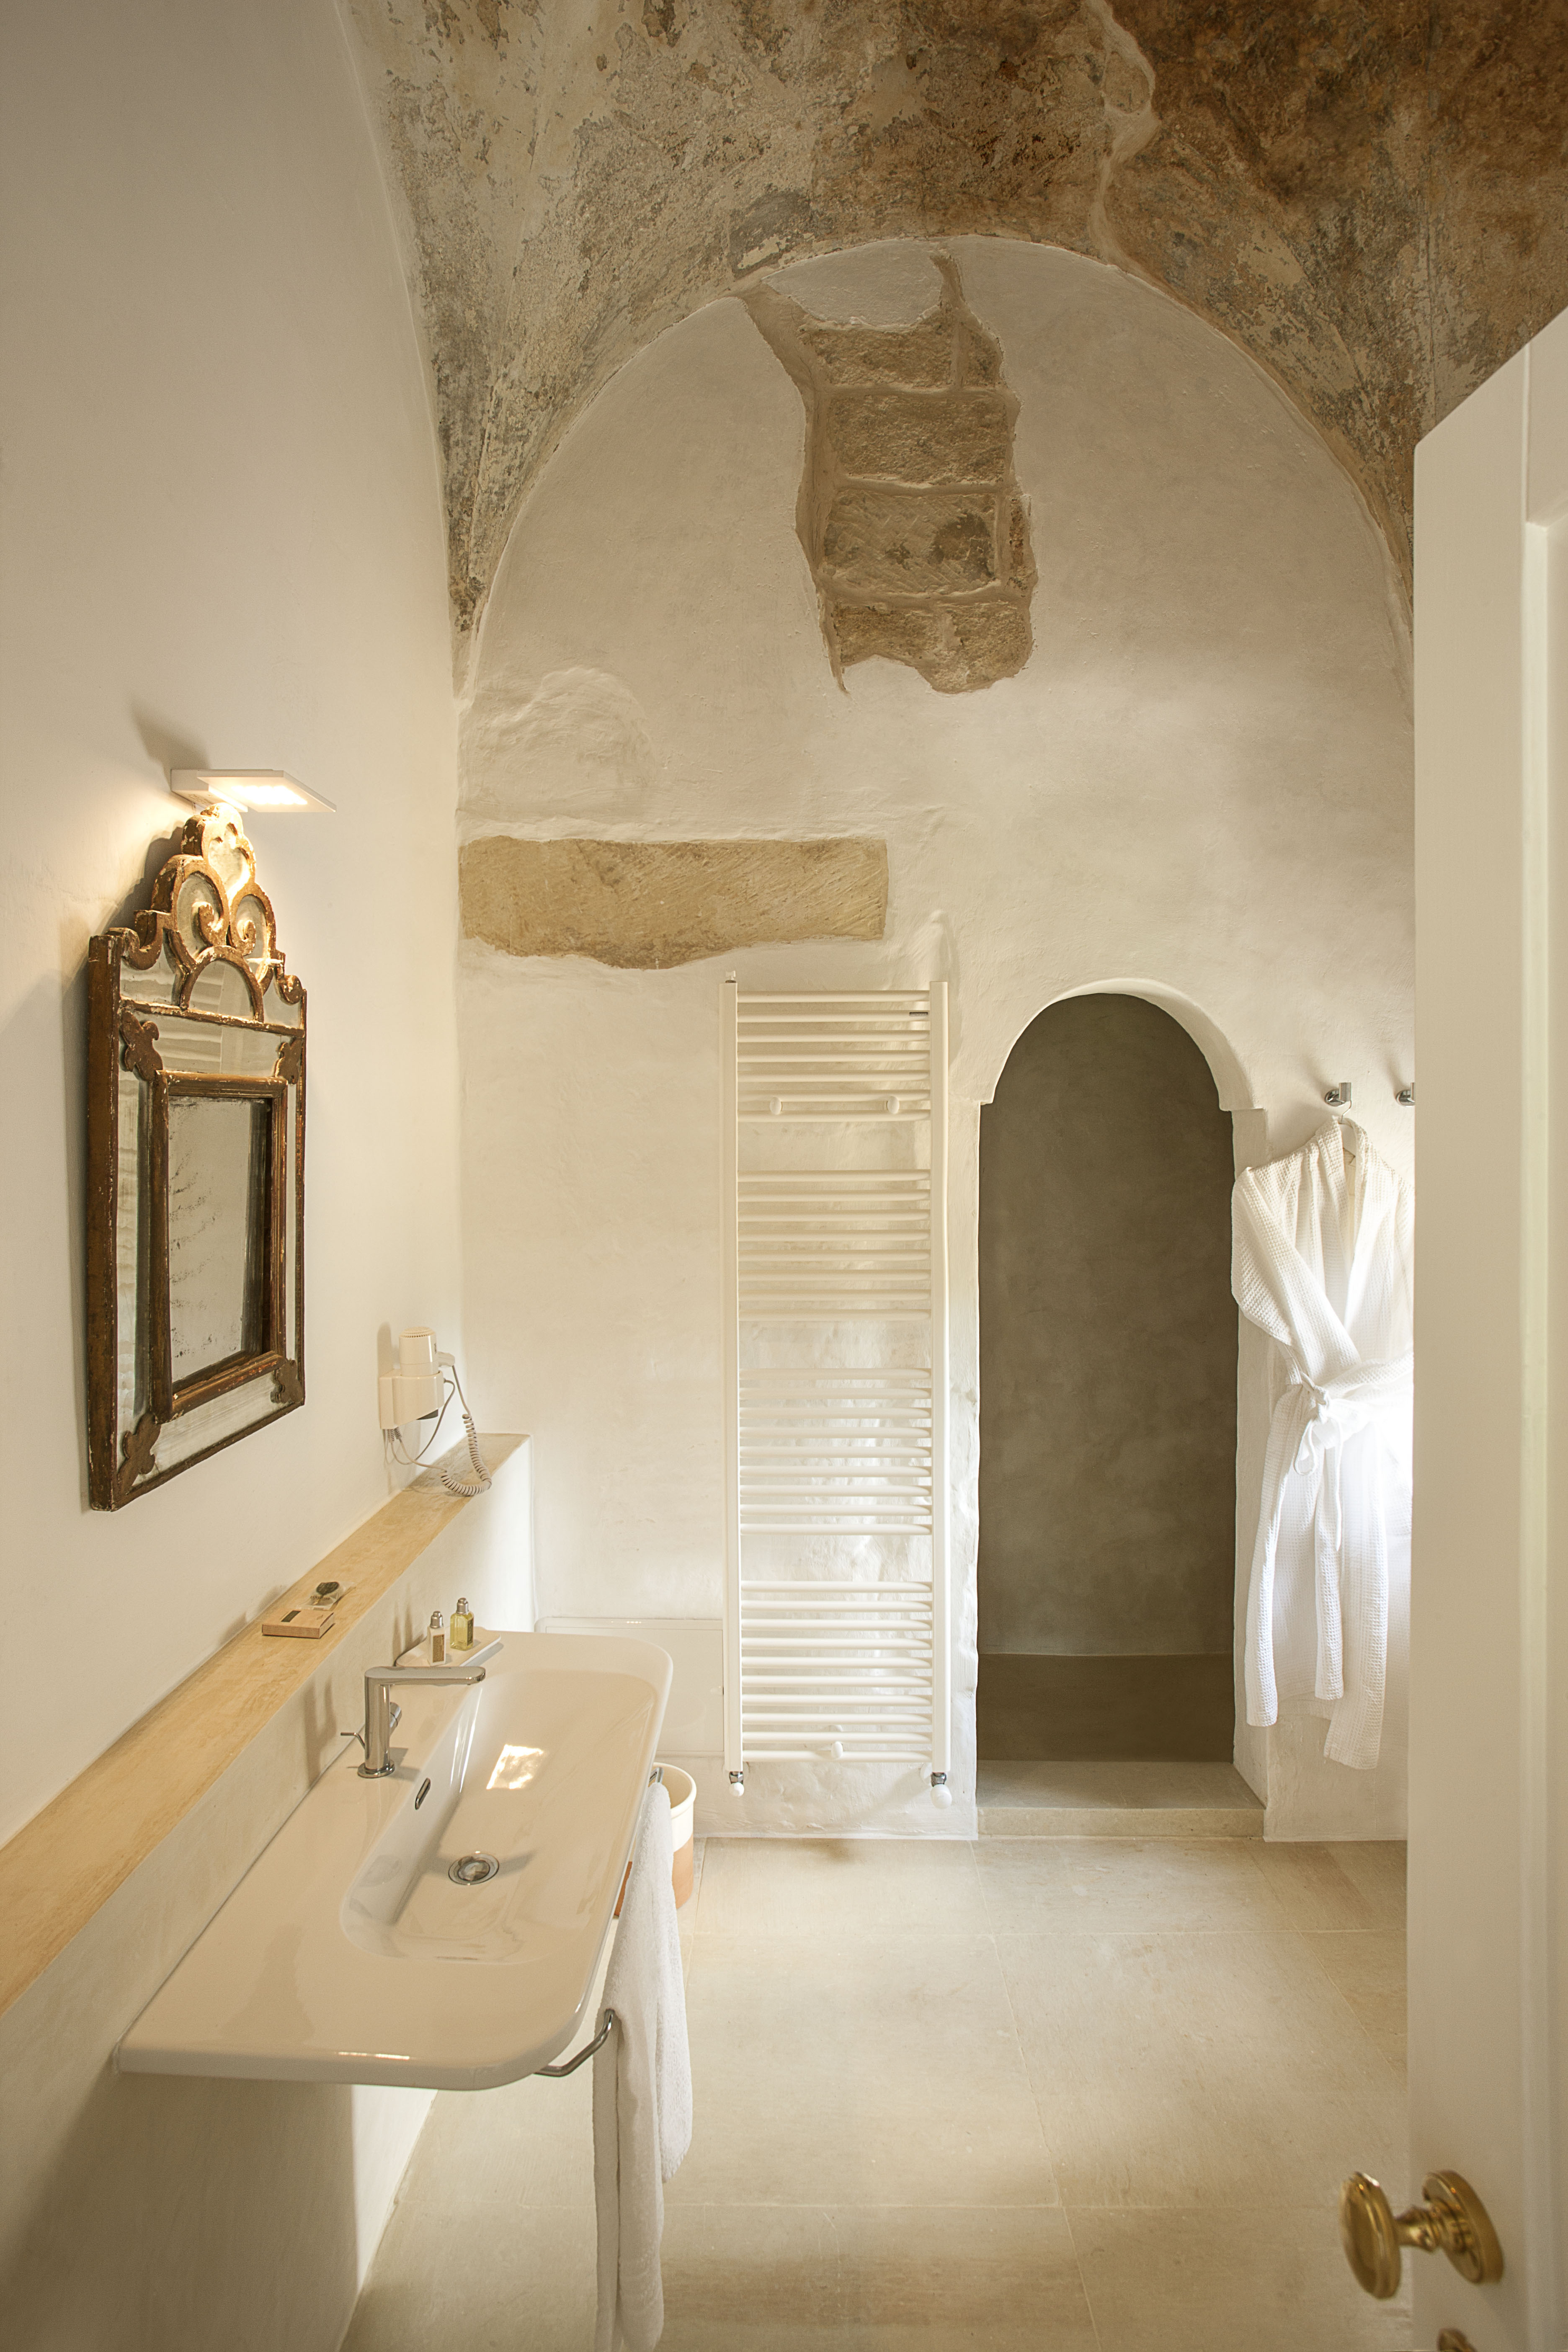 Weekday Wanderlust | Places: Critabianca, Southern Italy